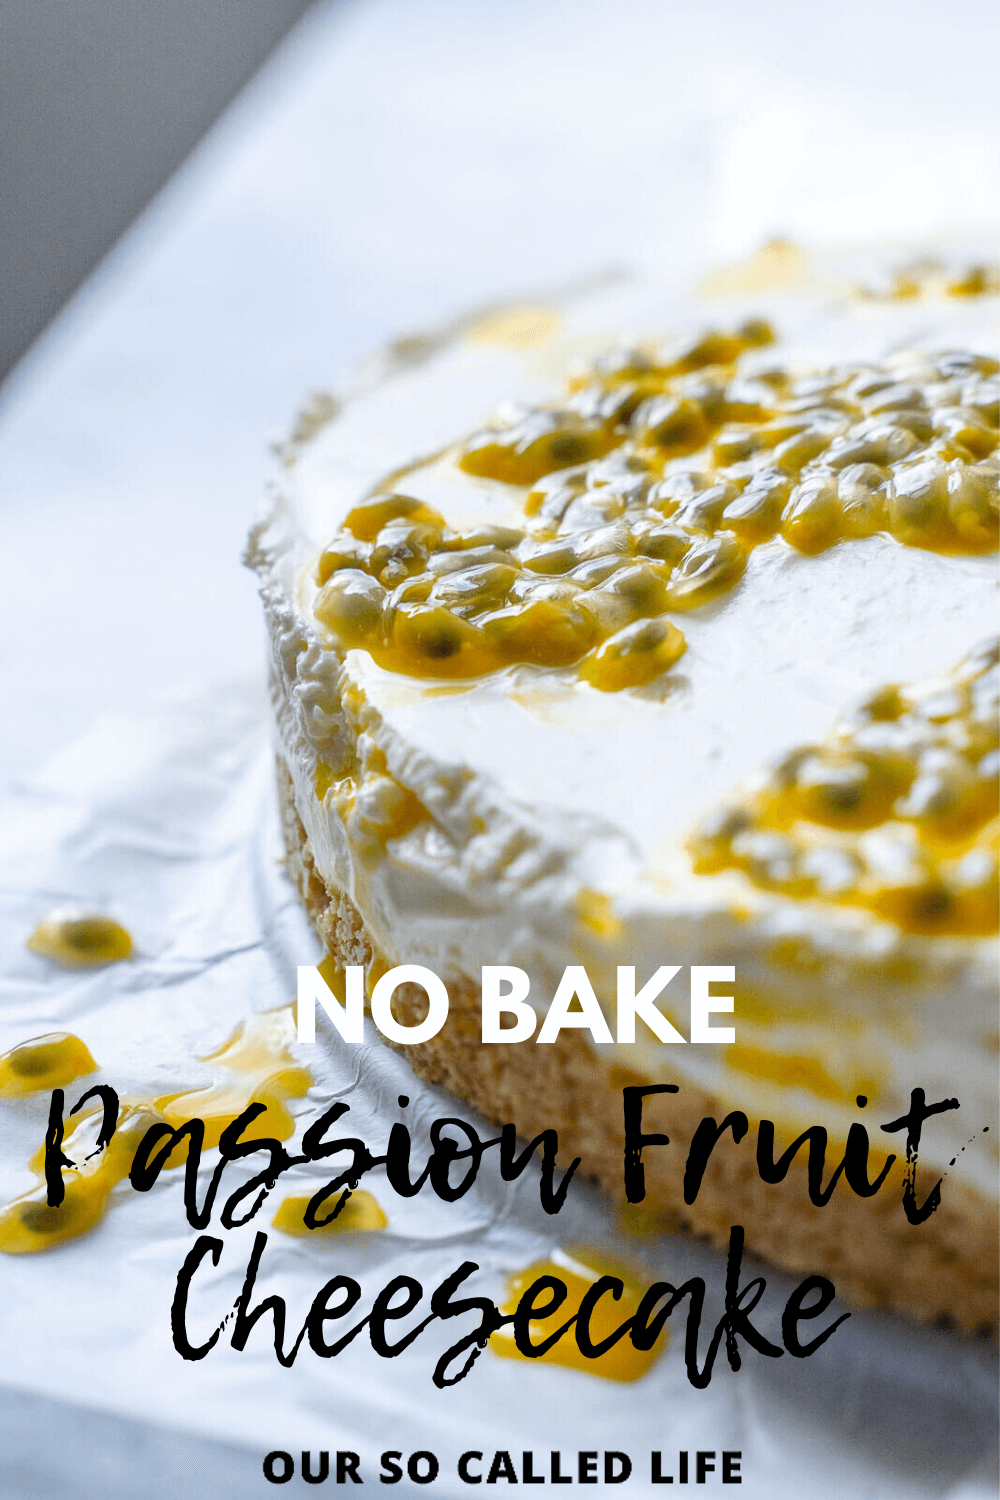 No Bake Passion Fruit Cheesecake